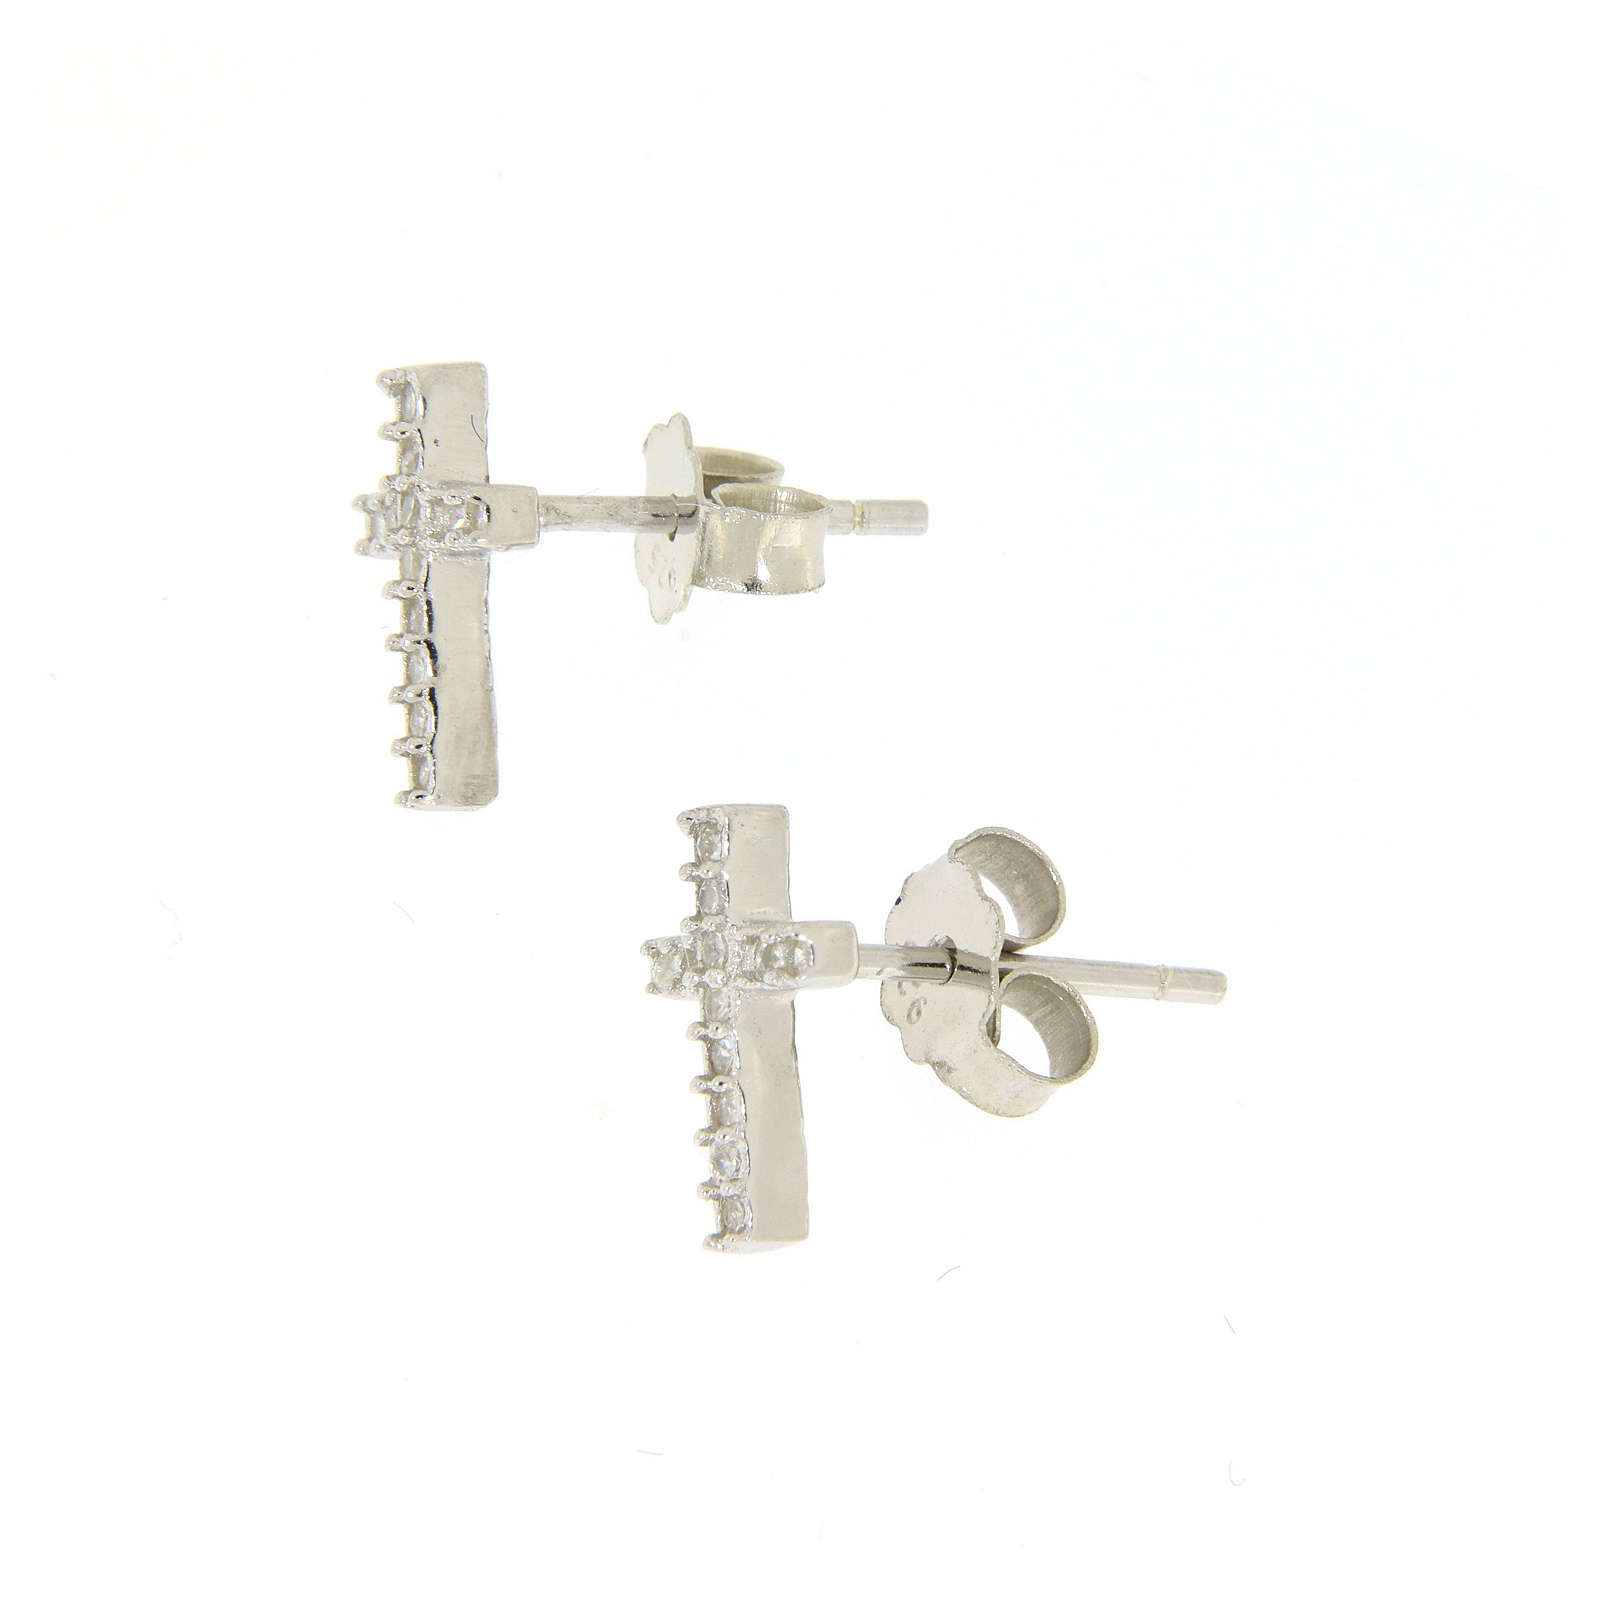 925 sterling silver parure: earrings, pendant chain with cross and zircon 4